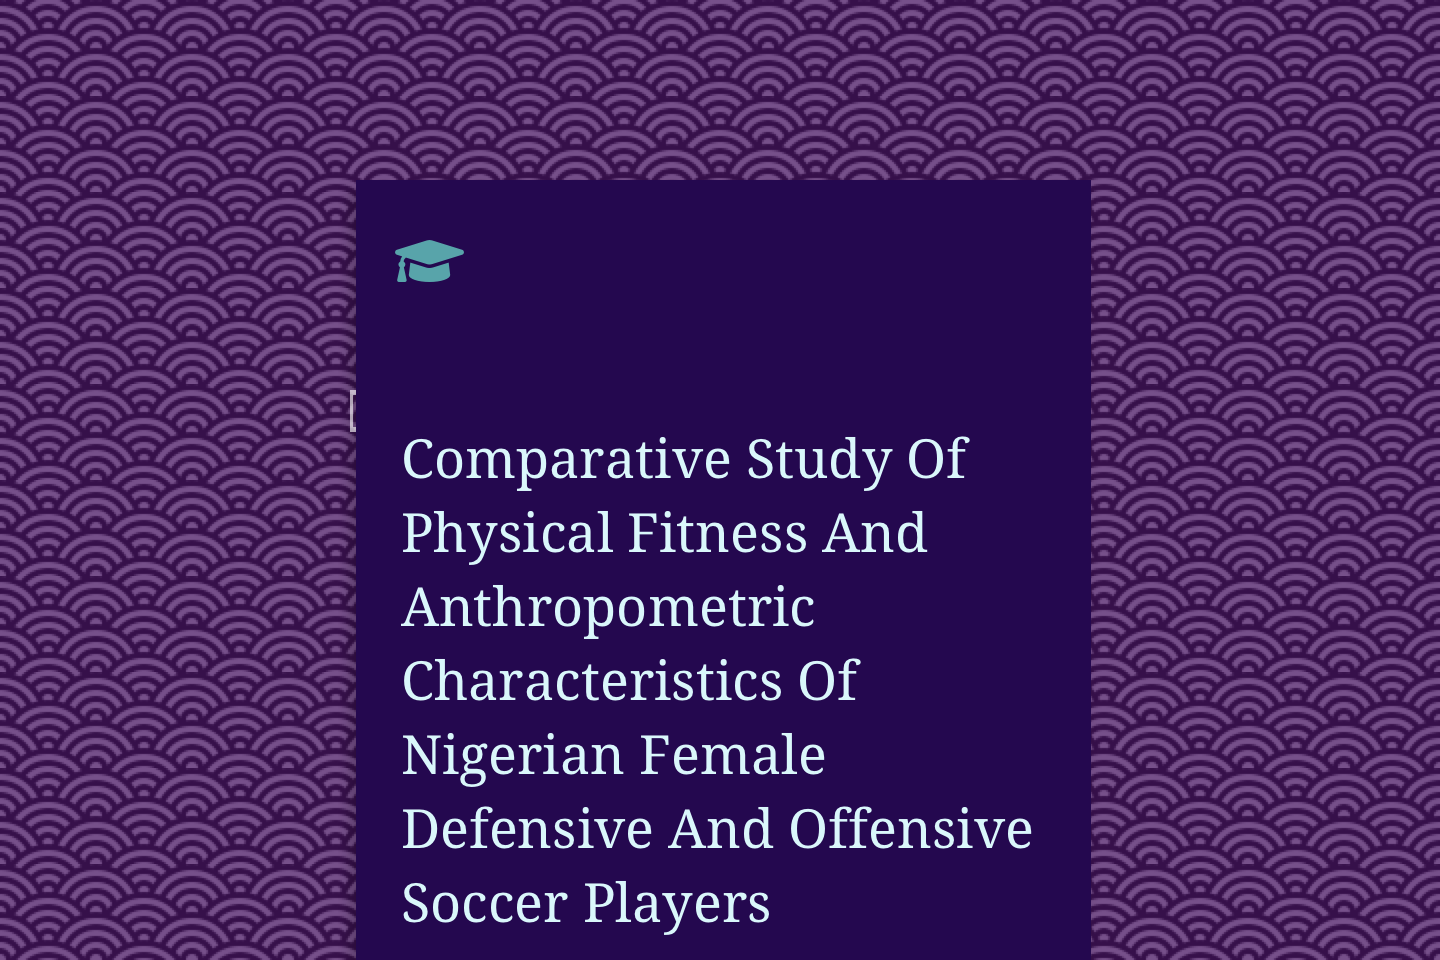 Comparative Study Of Physical Fitness And Anthropometric Characteristics Of Nigerian Female Defensive And Offensive Soccer Players In Abuja-FCT, Nigeria